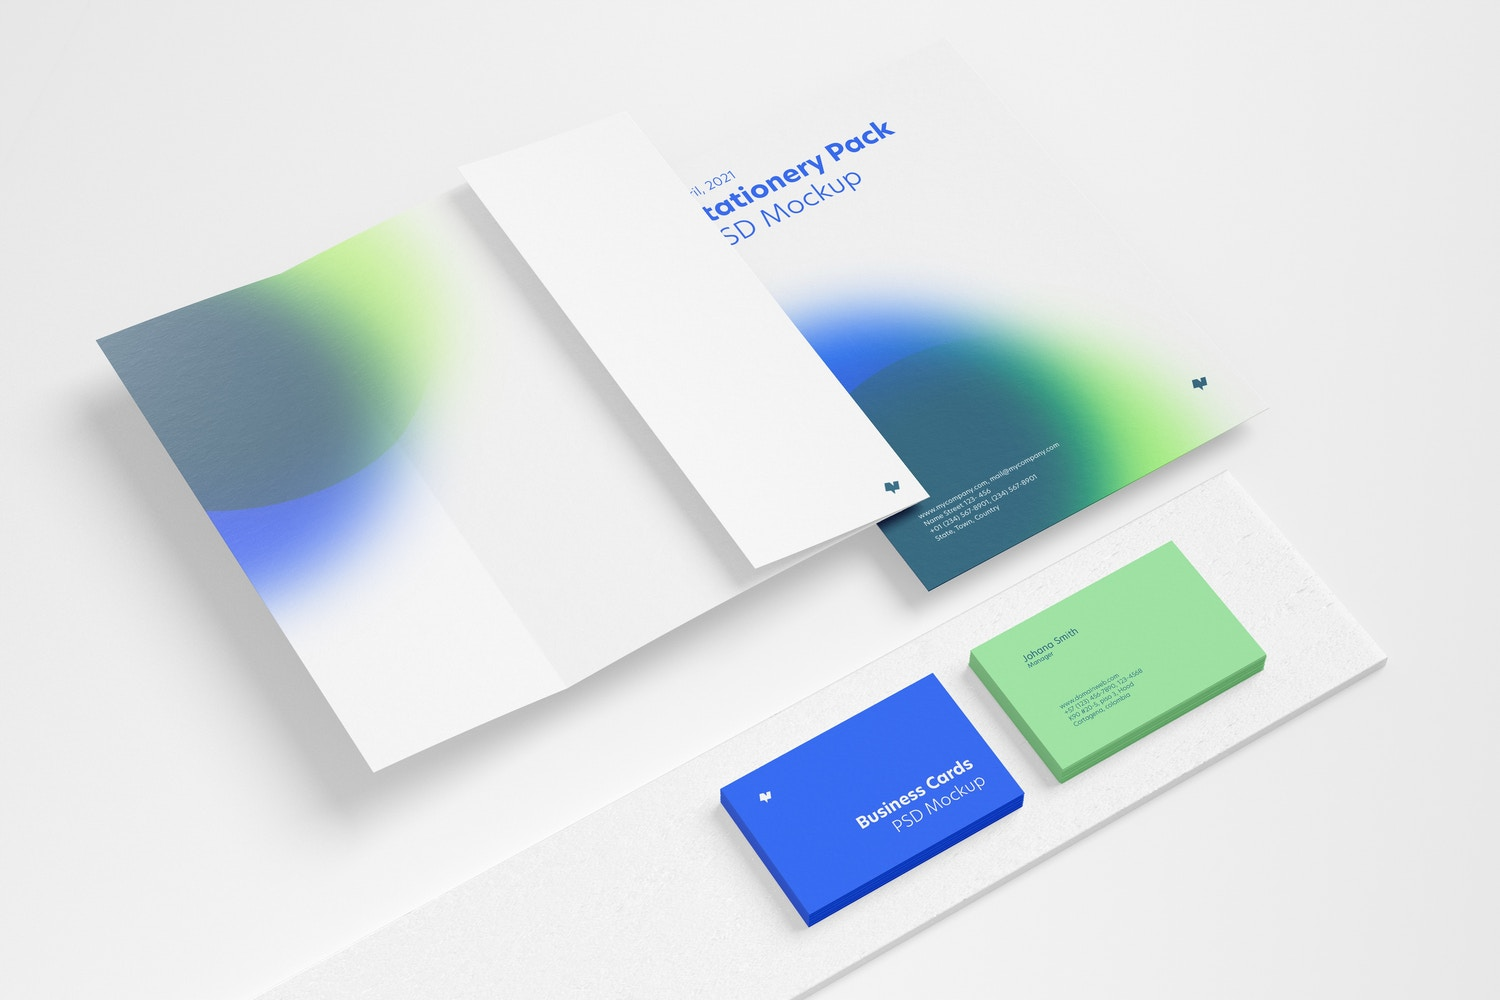 Stationery Scene Mockup, Perspective View